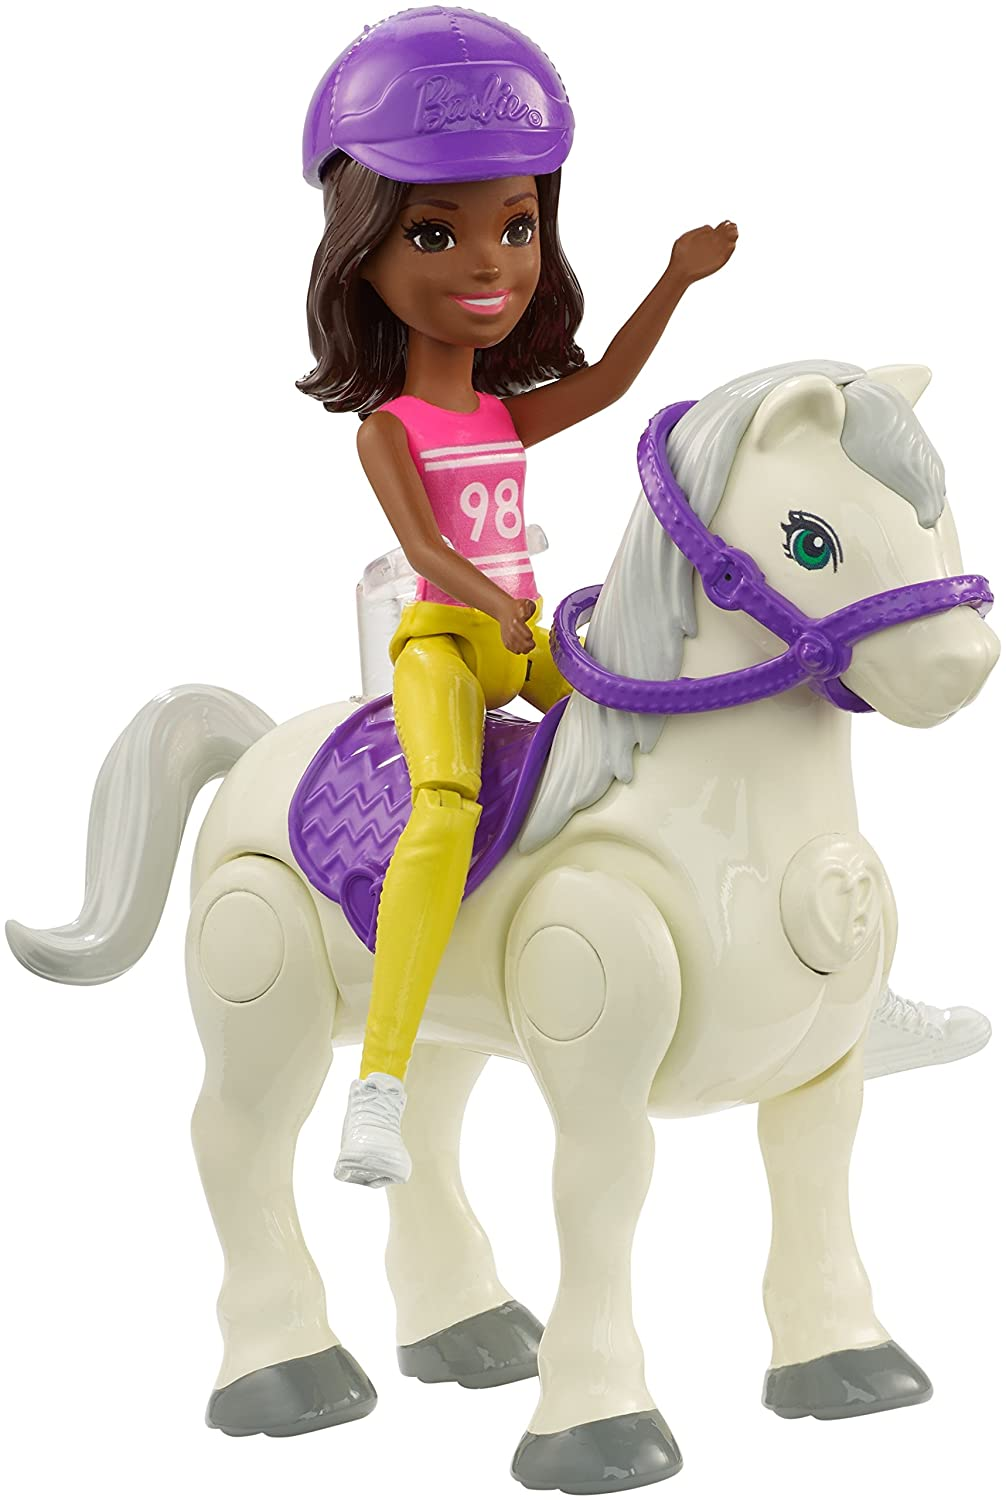 Barbie On The Go White Pony and Purple Fashion Doll Mattel FHV64